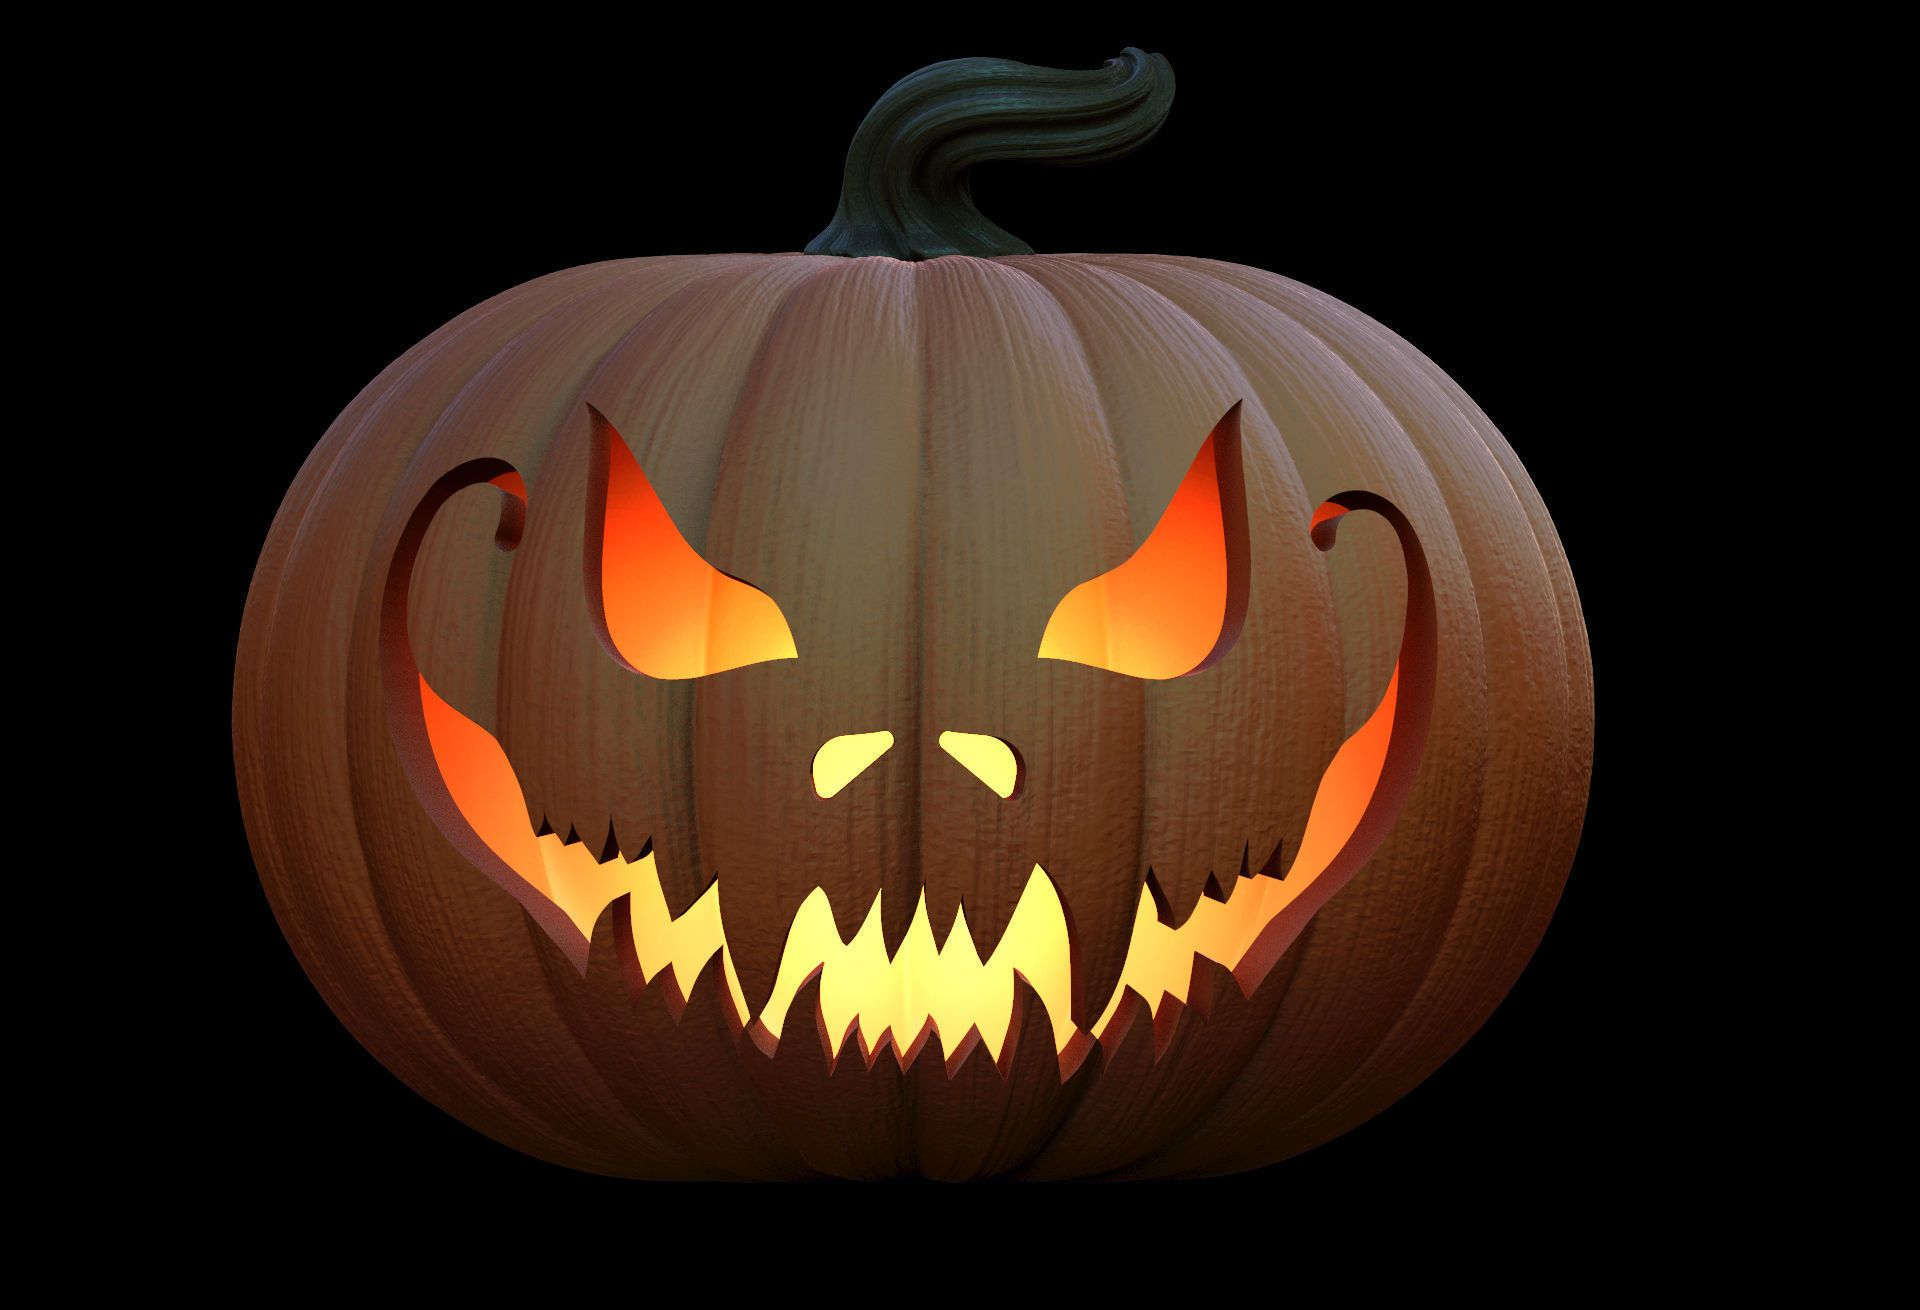 pumpkins for halloween 3d model obj stl 3 Тыква на